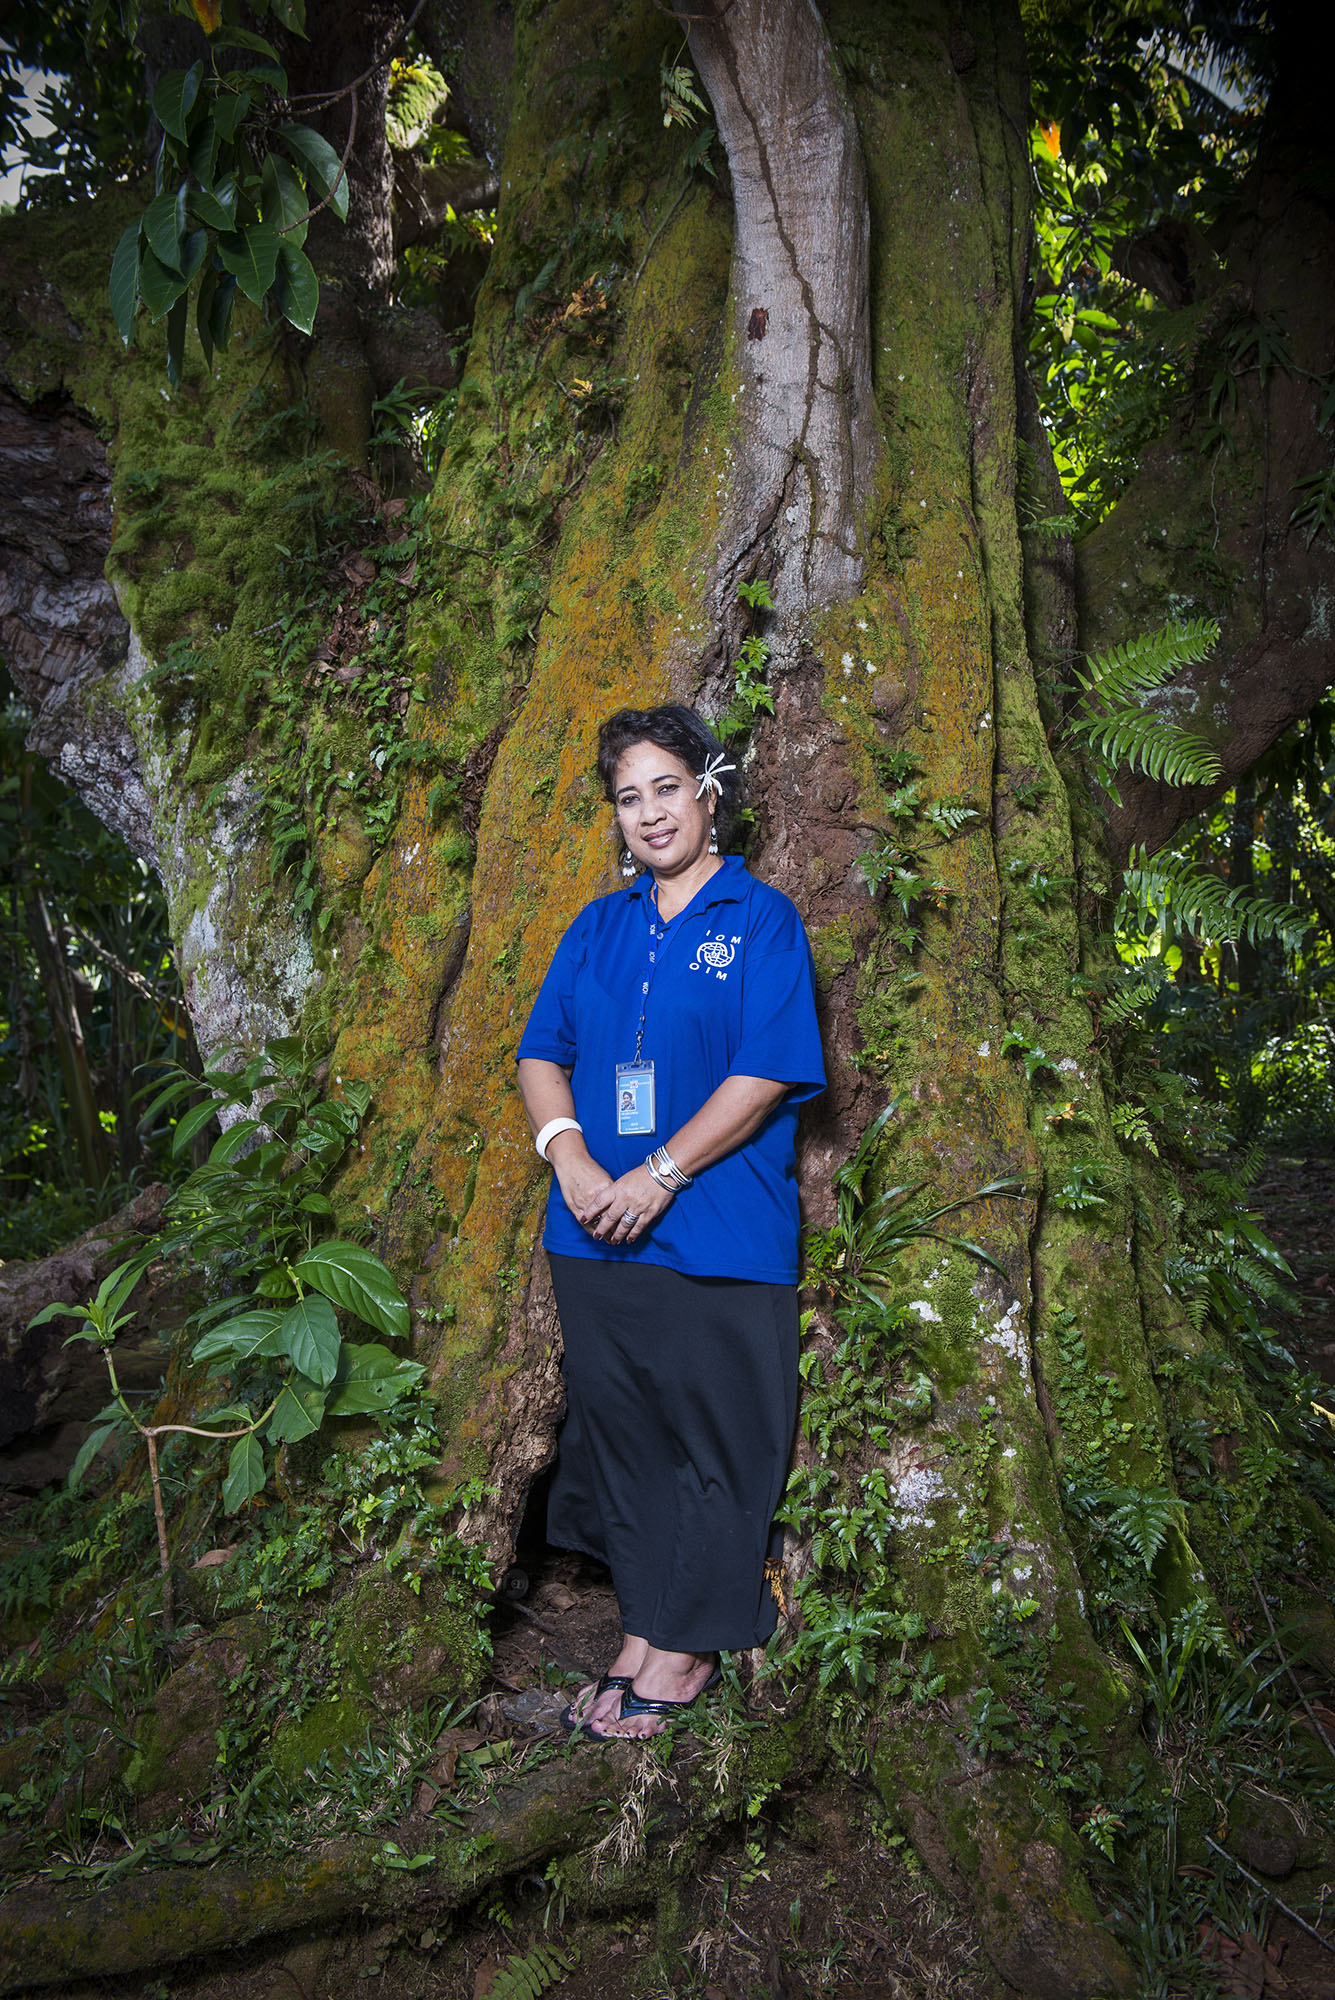 <p>Emeliana Musasrik is the Migrant Resource Center coordinator for Micronesia. The centers help islanders who want to move to the U.S. understand how to navigate in a foreign culture.</p>